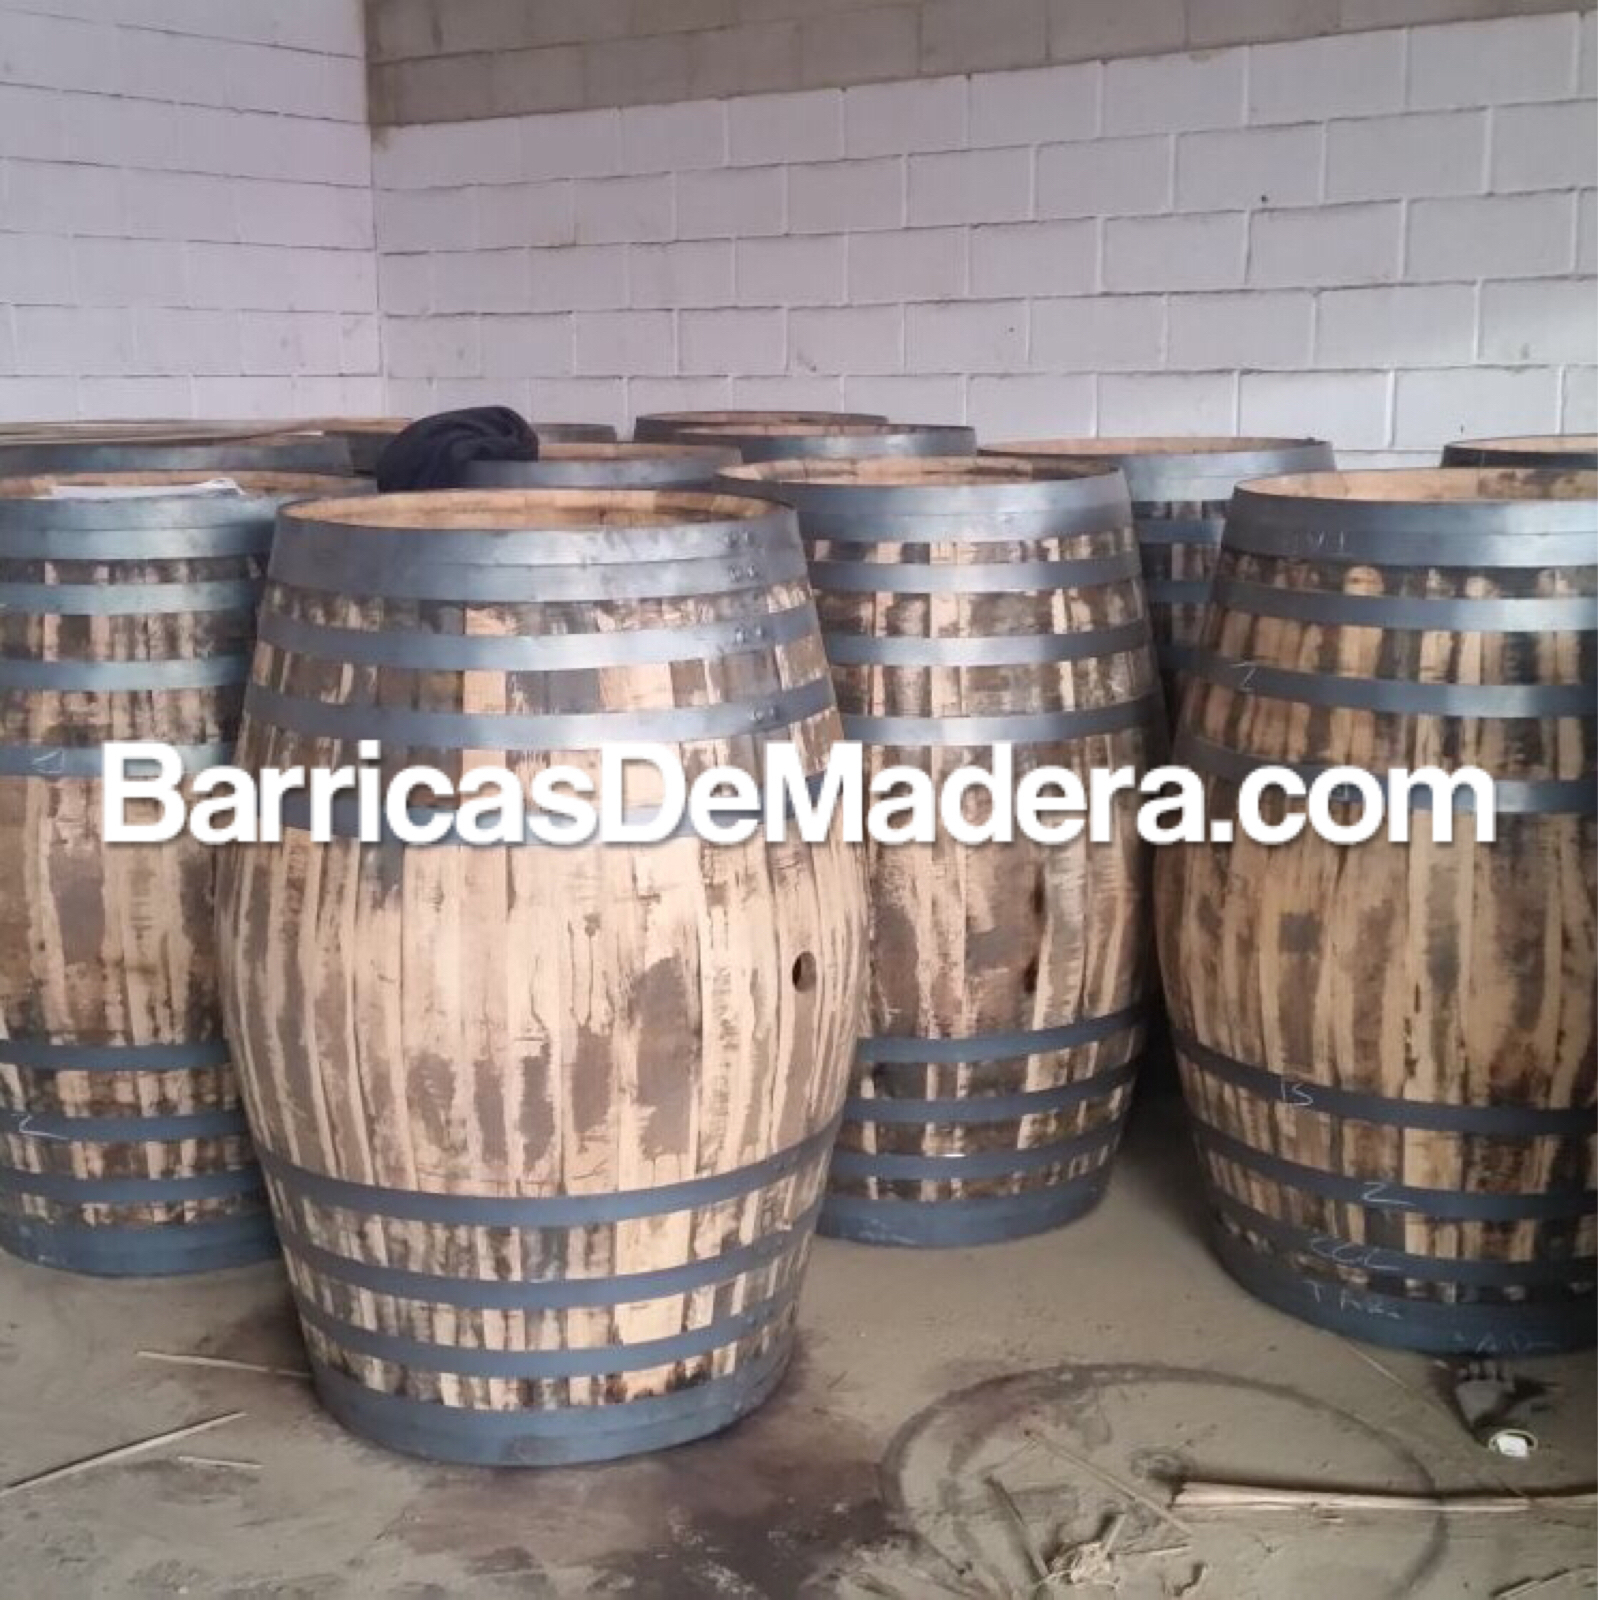 refurbished-sherry-casks-notes-spain